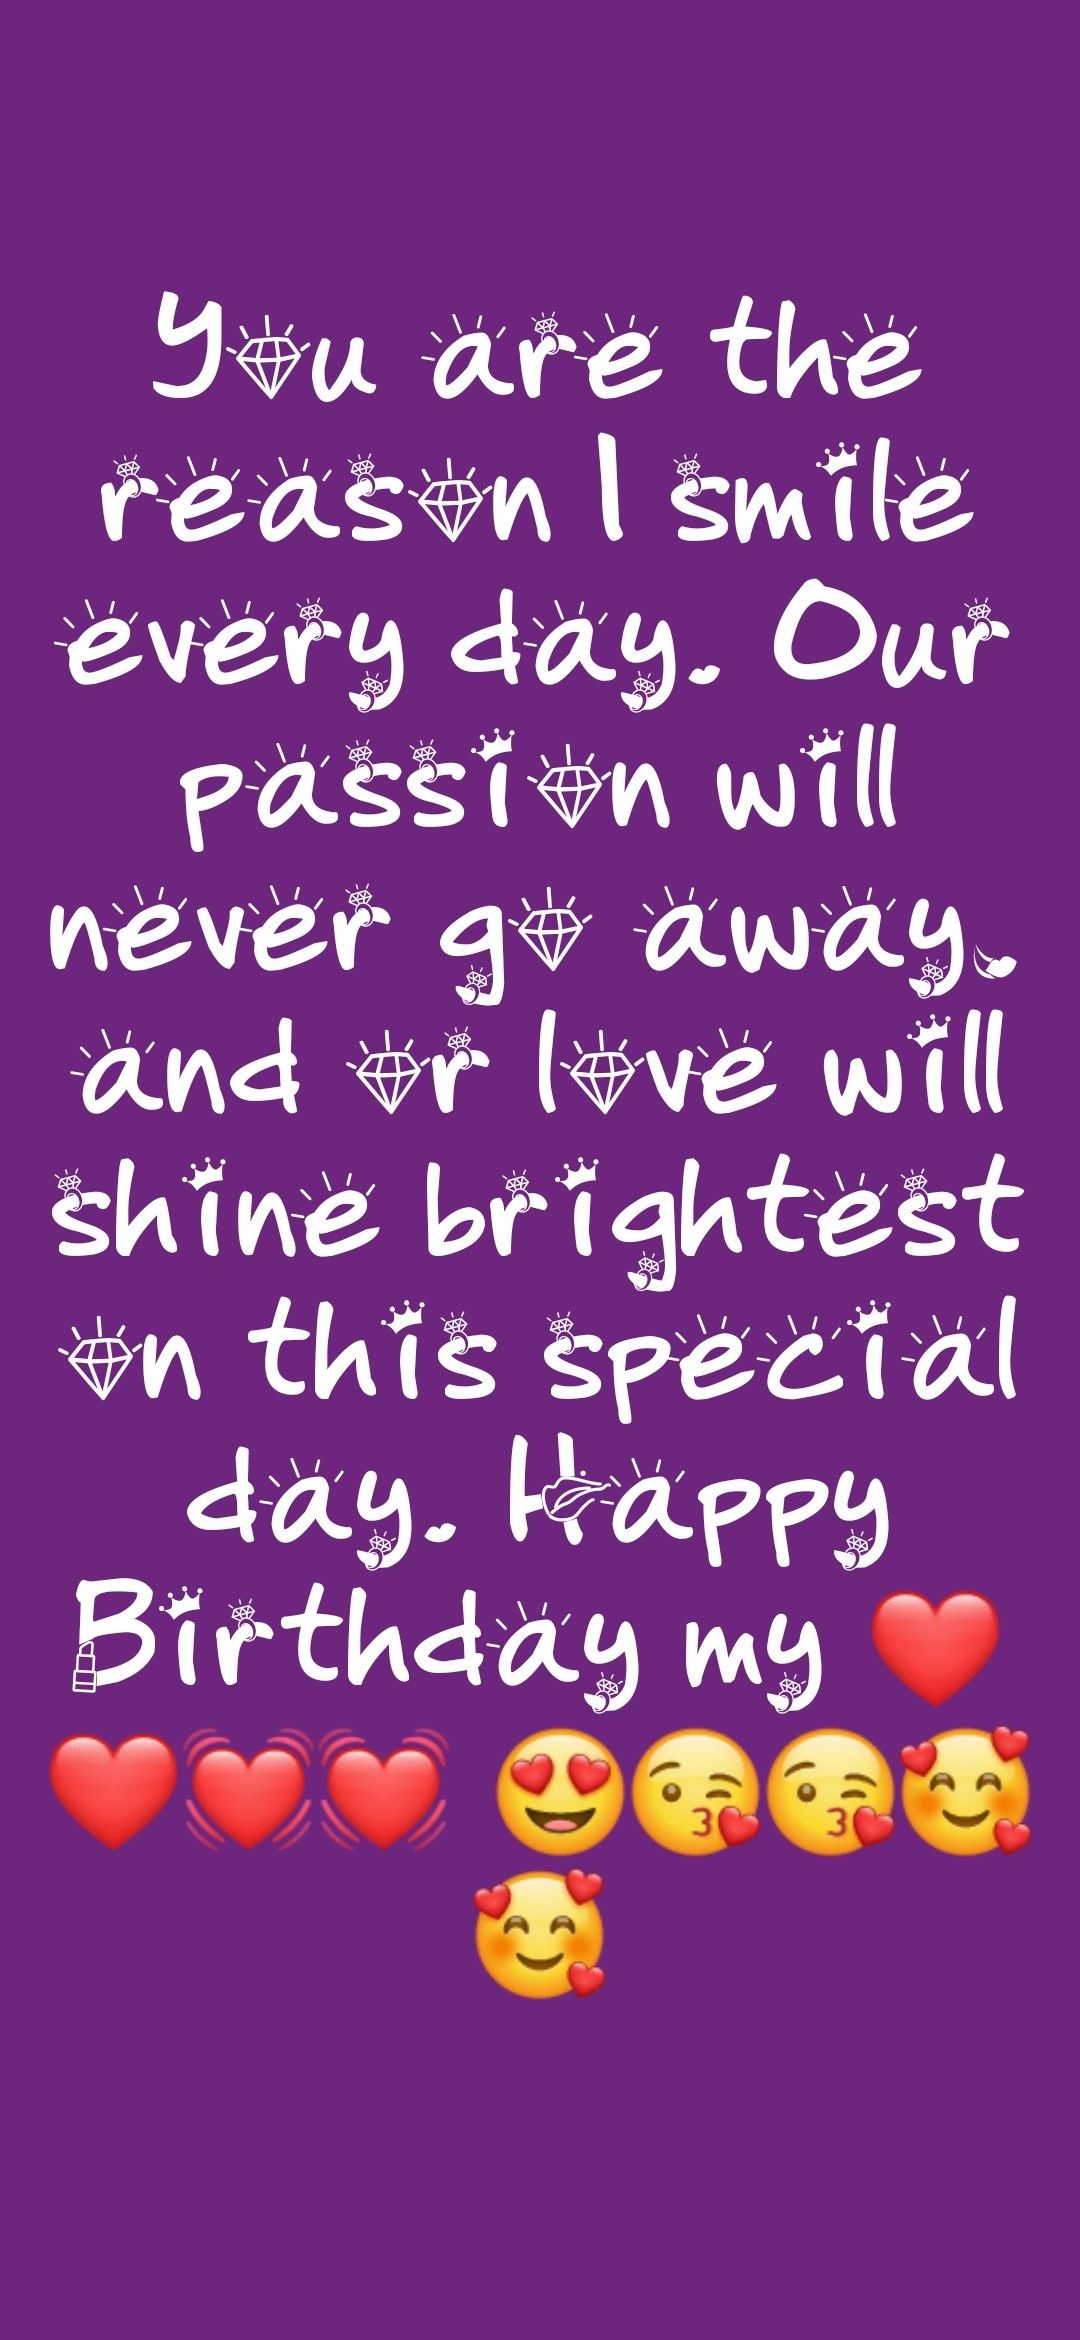 Pin By Vishu On What S App Stetus Love You Gif Special Day App